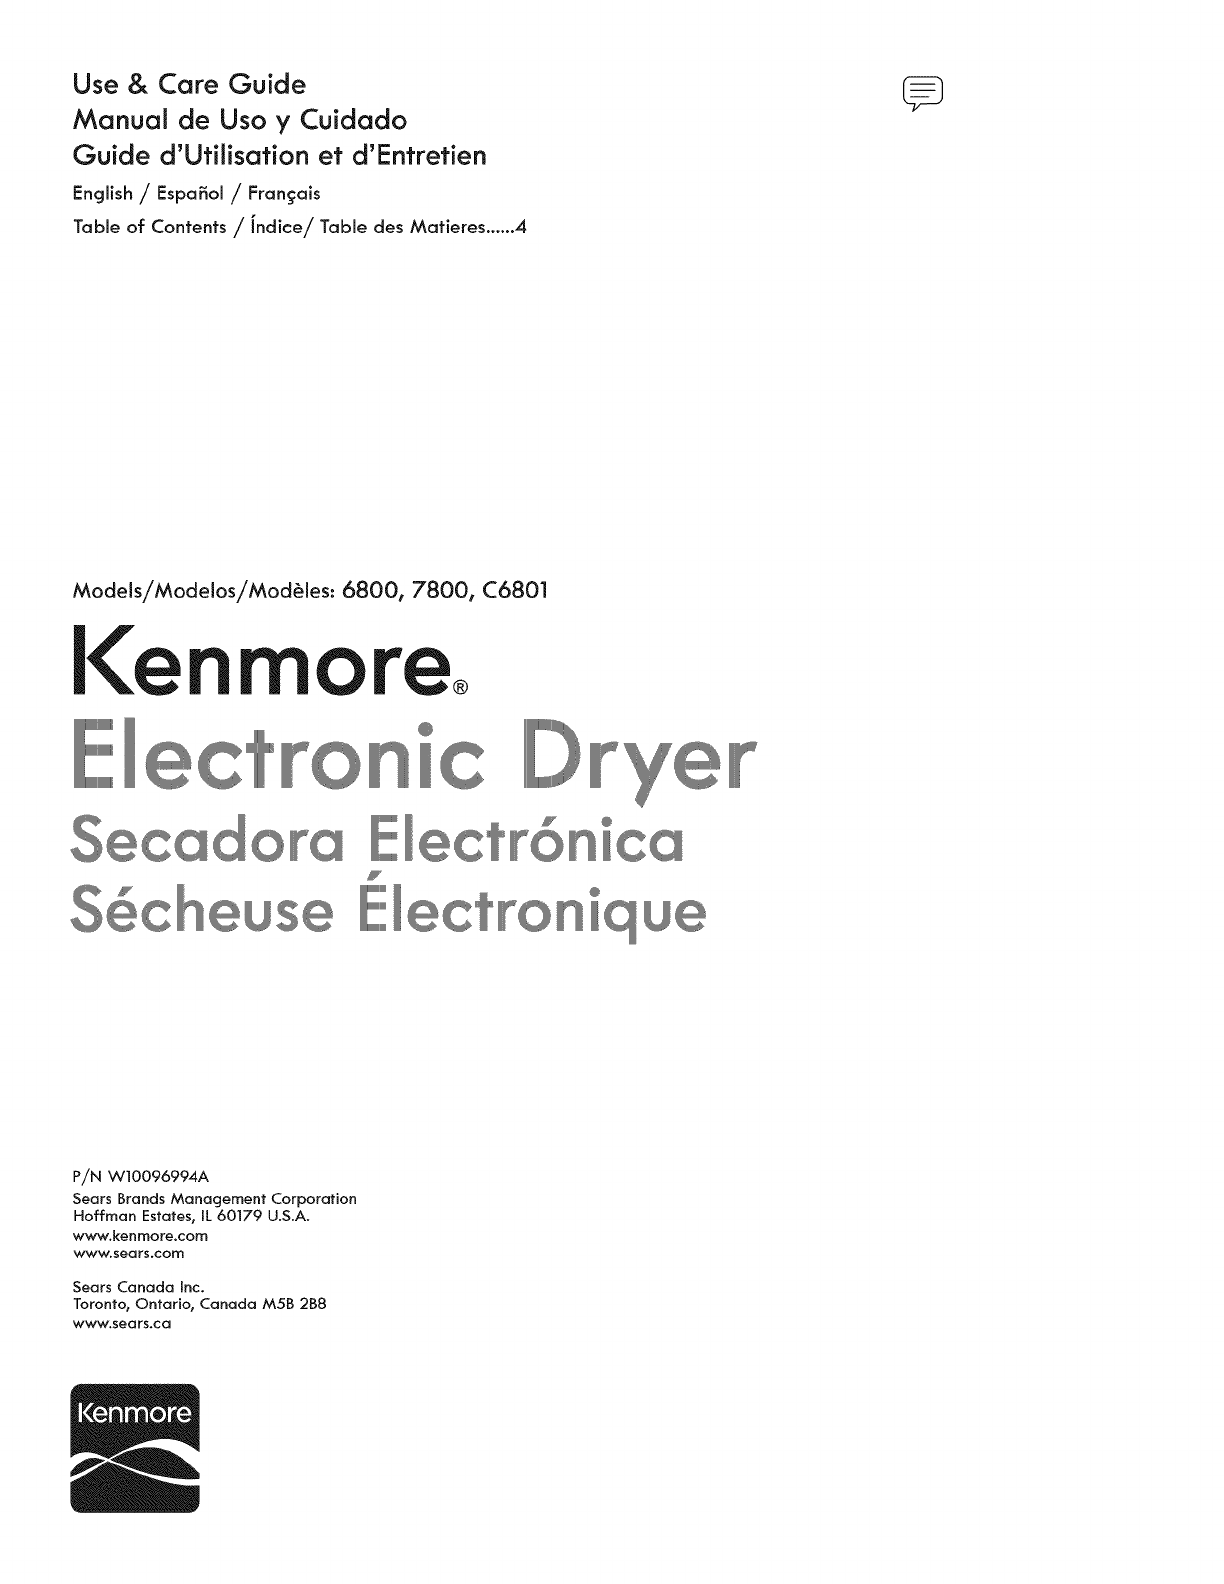 kenmore clothes dryer 6800 user guide manualsonline com rh laundry manualsonline com Kenmore Model 790 Electric Range Kenmore Gas Range